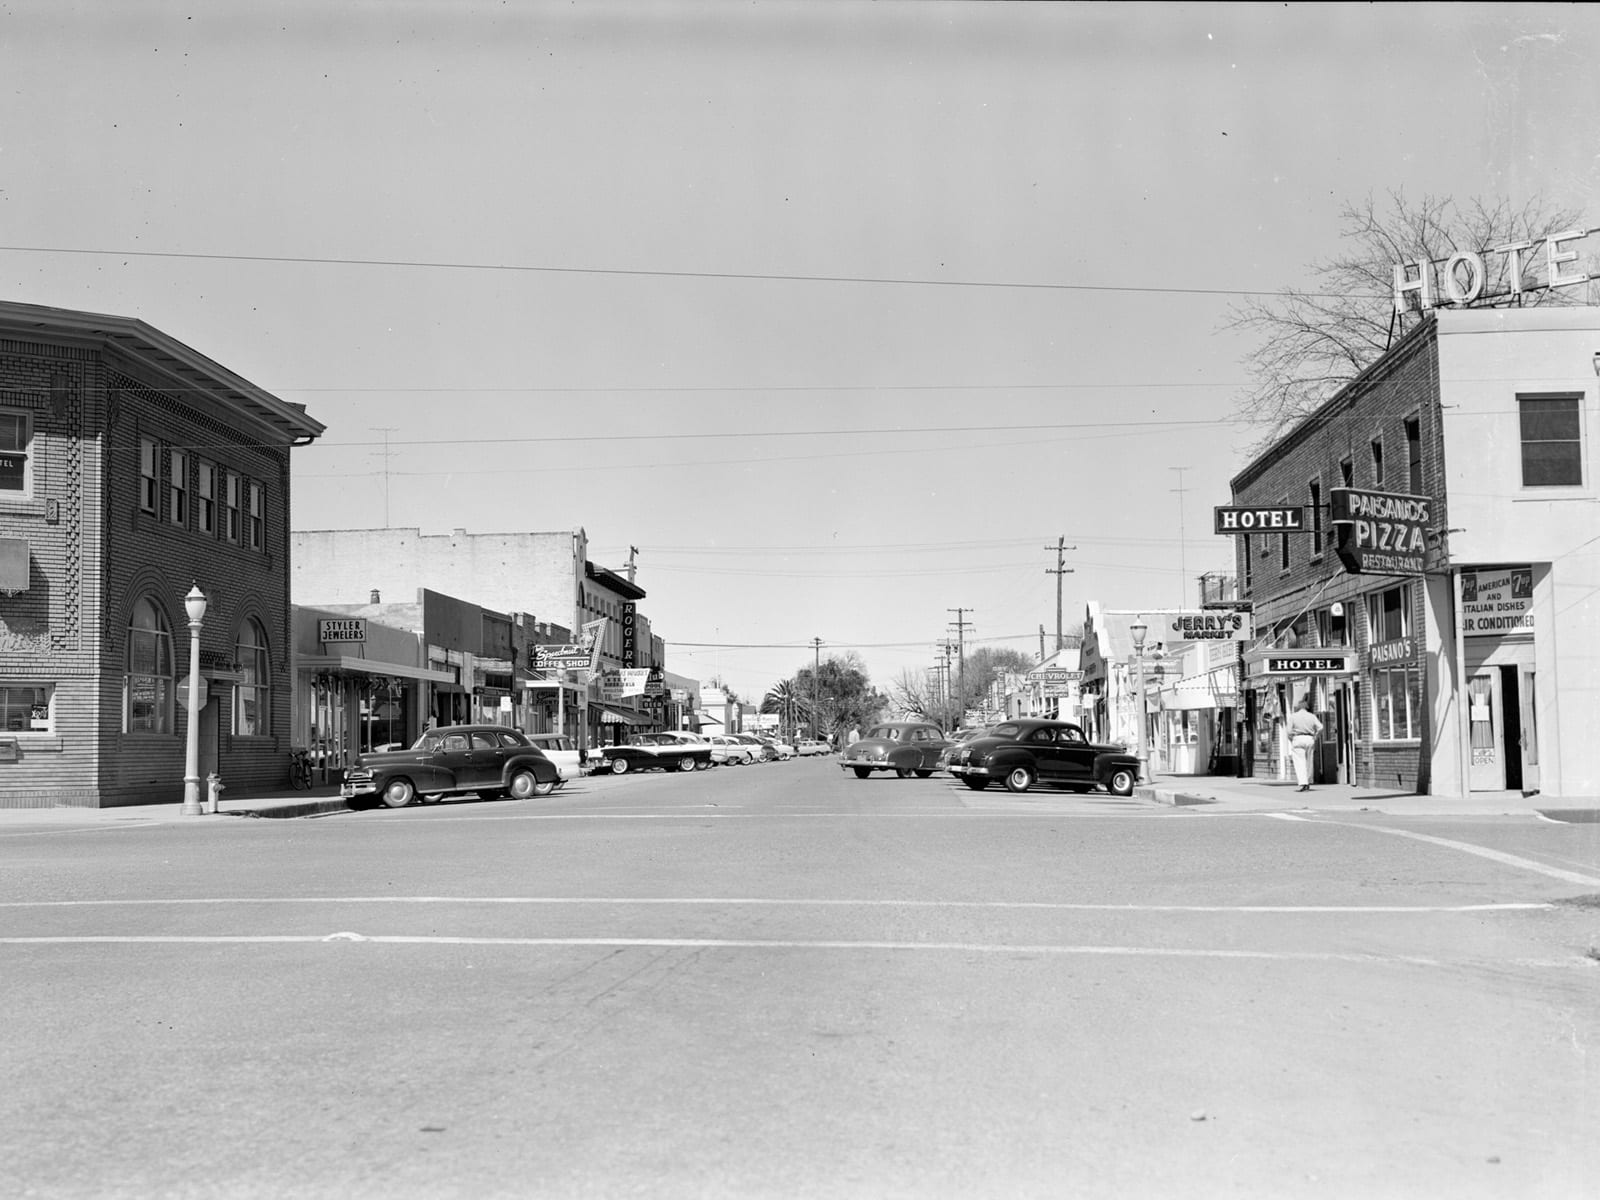 G Street at Second Street, looking north, 1957